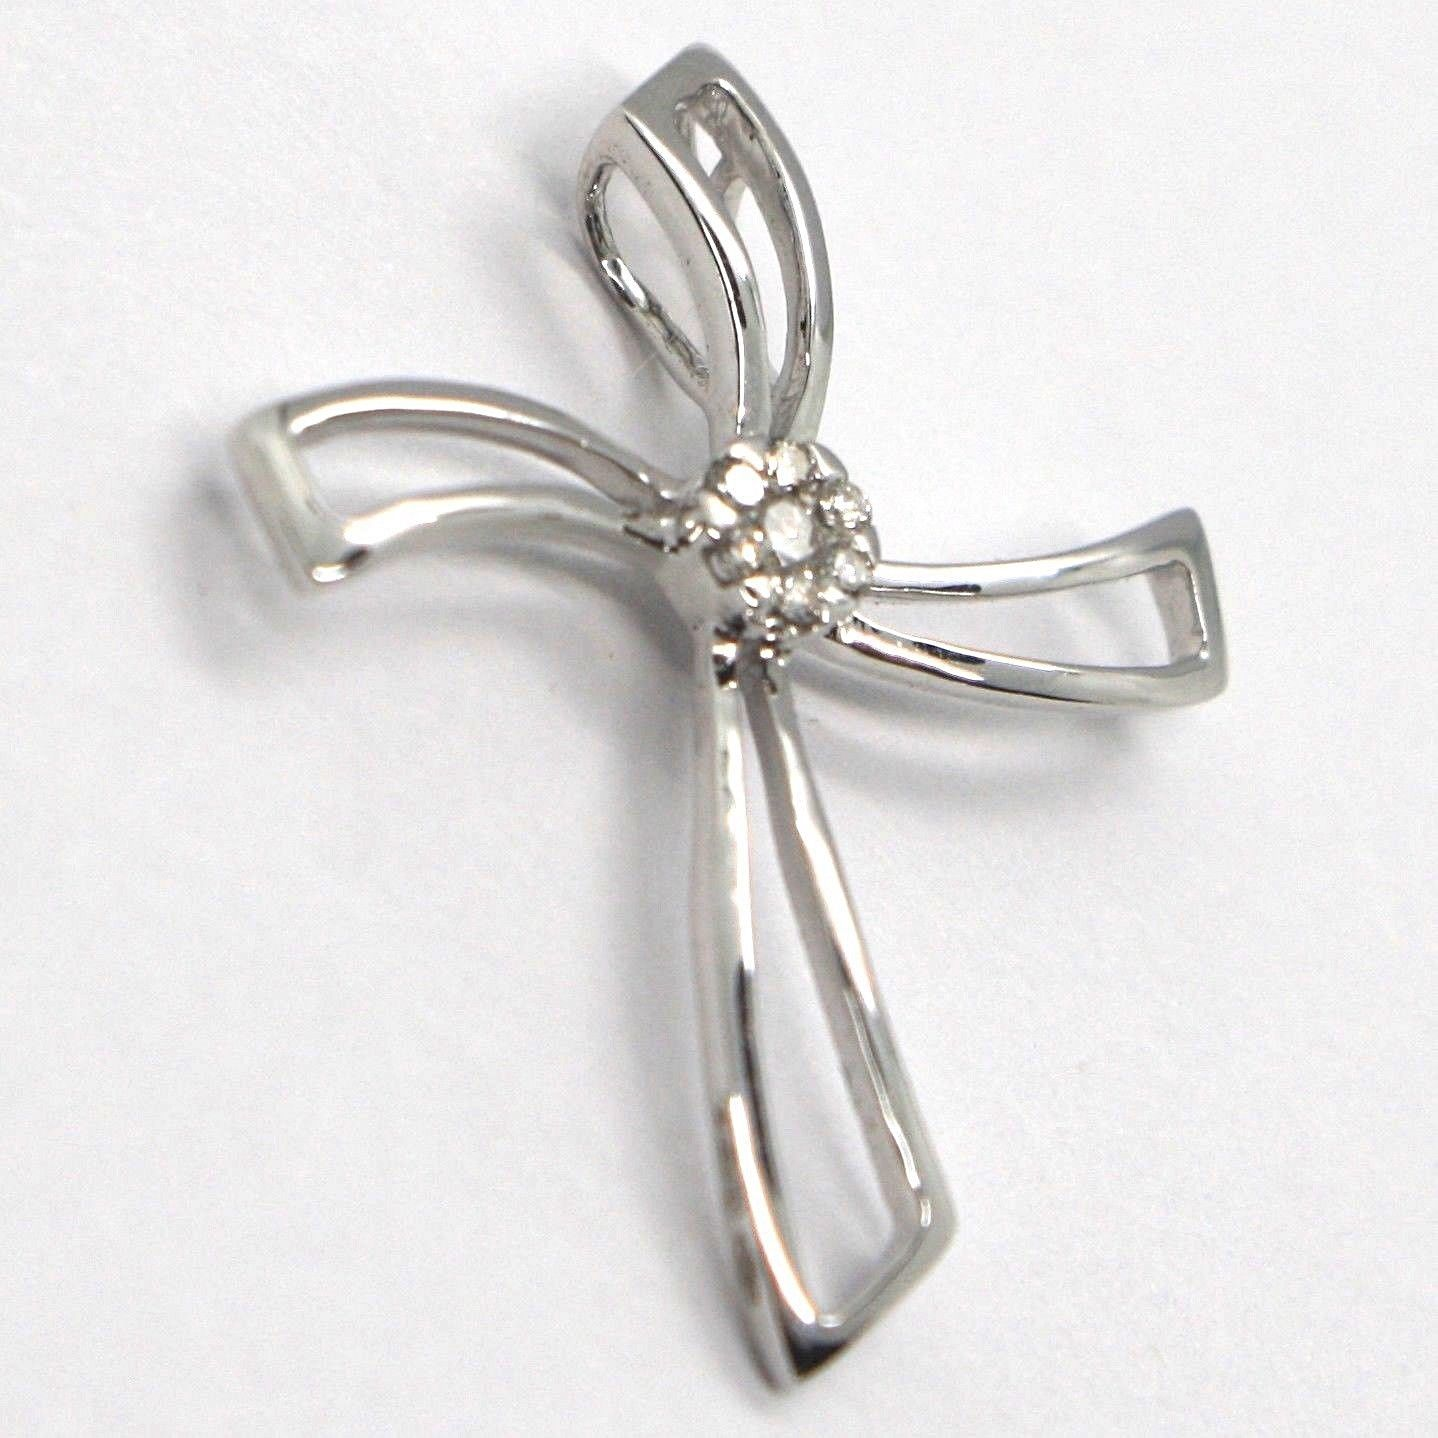 CROSS PENDANT WHITE GOLD 750 18K, DIAMONDS, FLOWER, UNDULATED, MADE IN ITALY